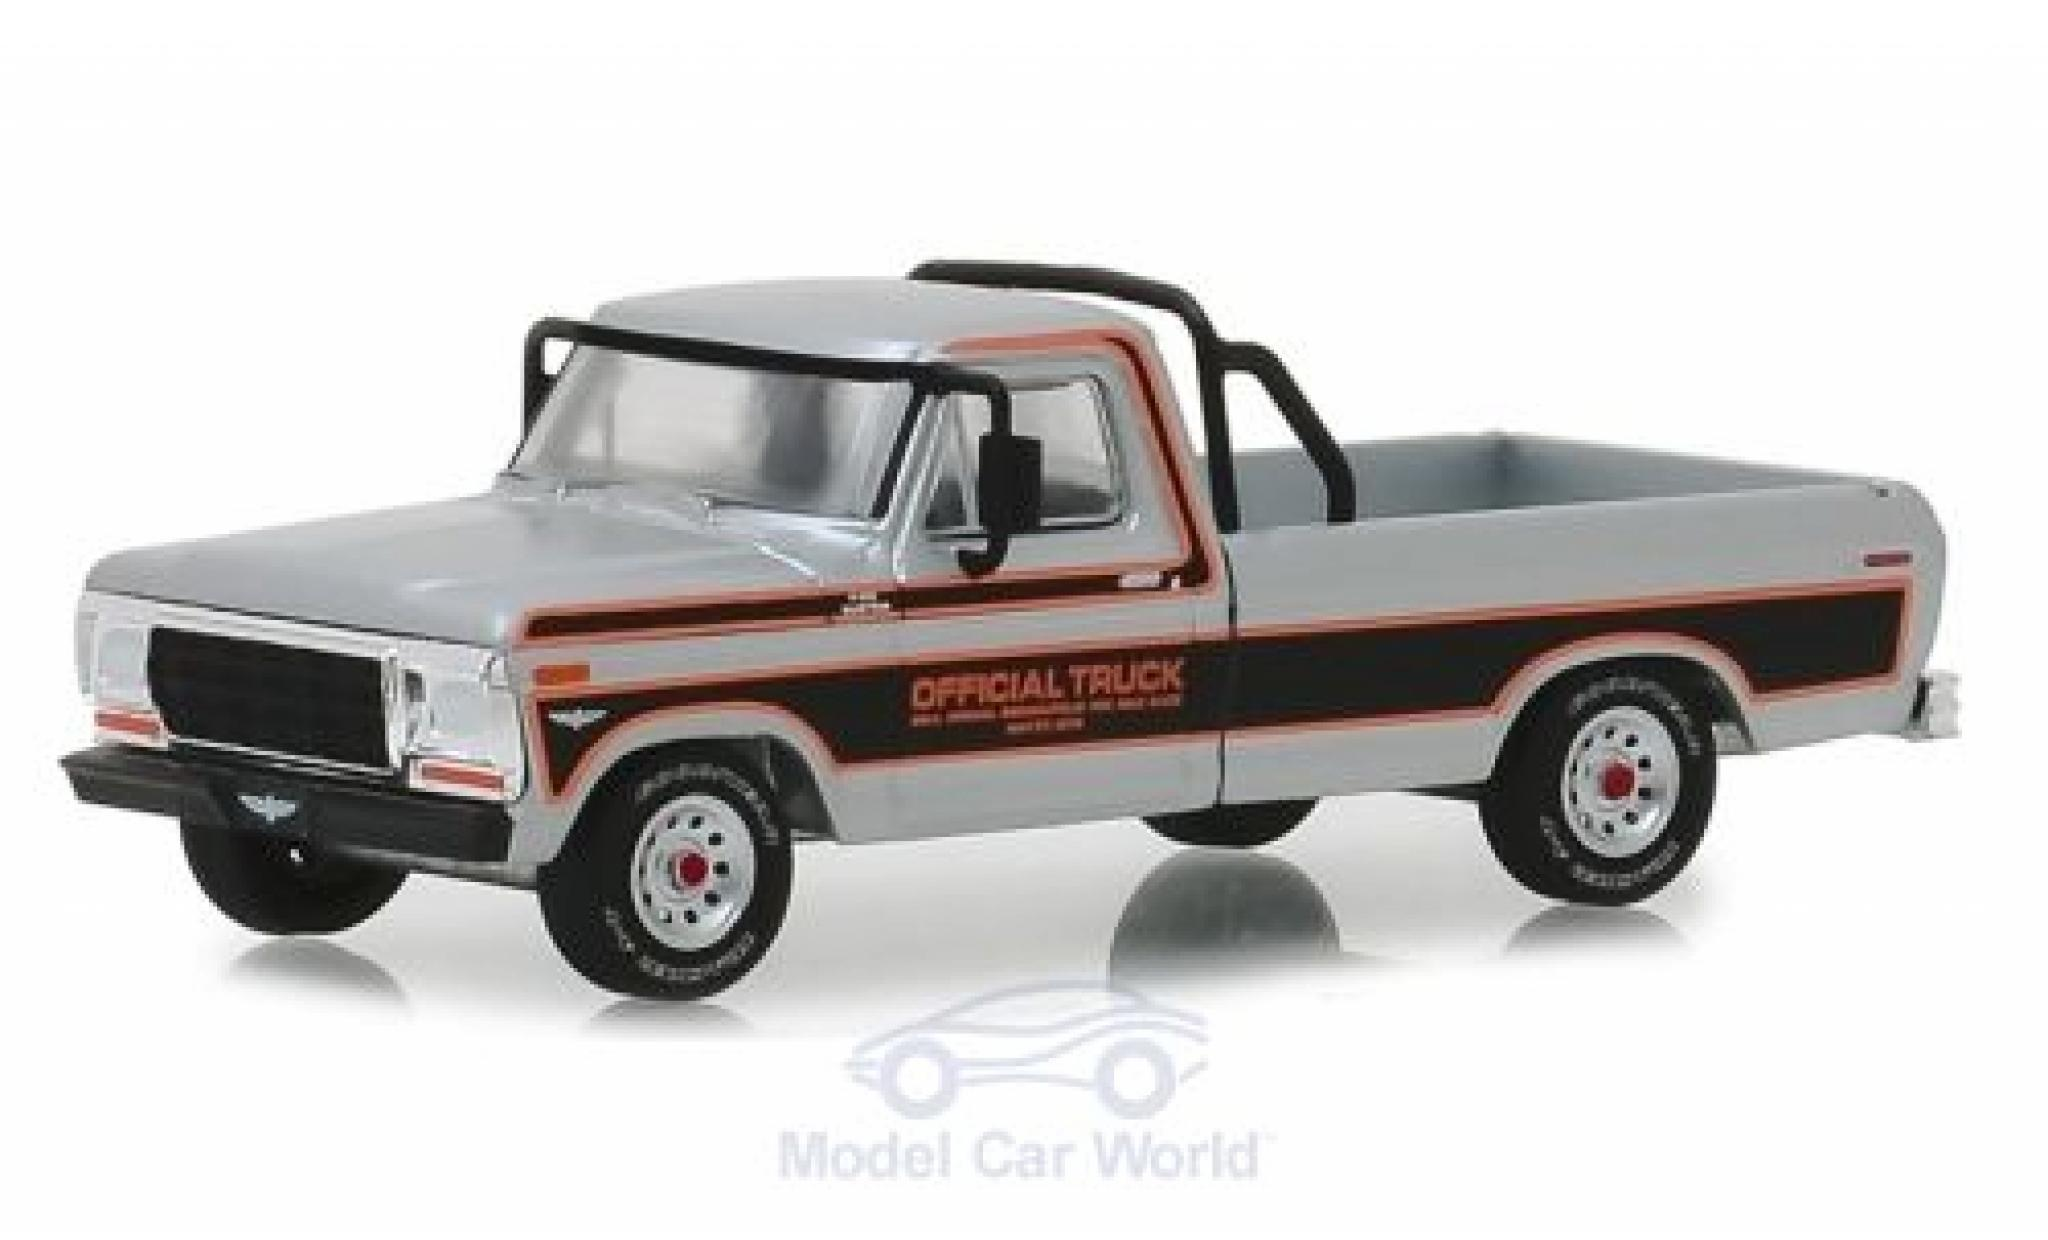 Ford F-1 1/64 Greenlight 00 Pick-Up grise Official Truck Indianapolis 500 1979